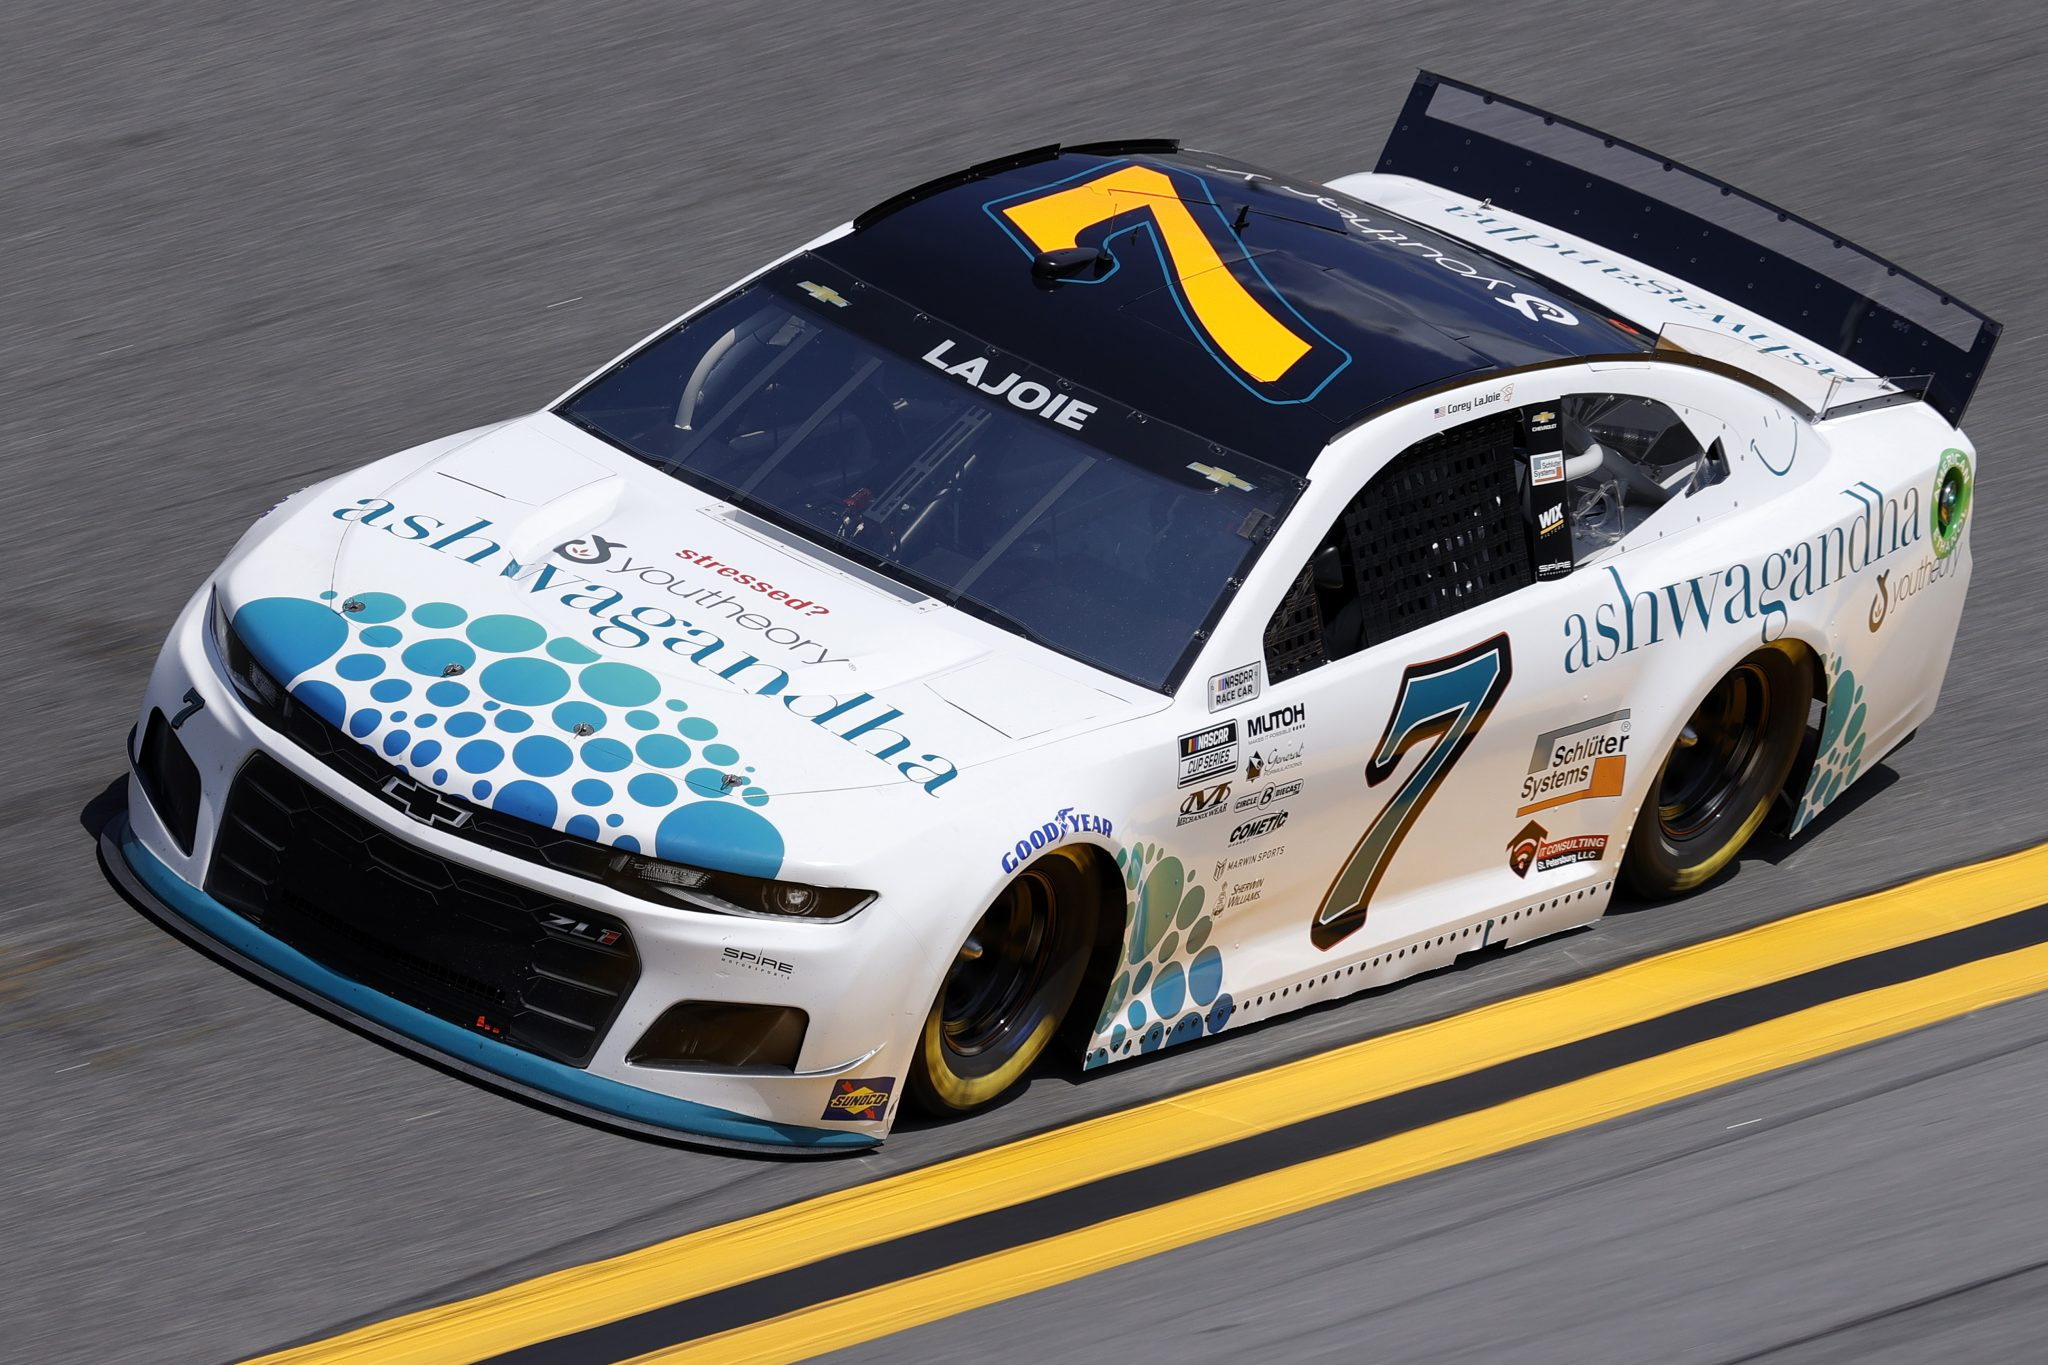 DAYTONA BEACH, FLORIDA - FEBRUARY 10: Corey LaJoie, driver of the #7 Youtheory Chevrolet, drives during practice for the NASCAR Cup Series 63rd Annual Daytona 500 at Daytona International Speedway on February 10, 2021 in Daytona Beach, Florida. (Photo by Jared C. Tilton/Getty Images) | Getty Images